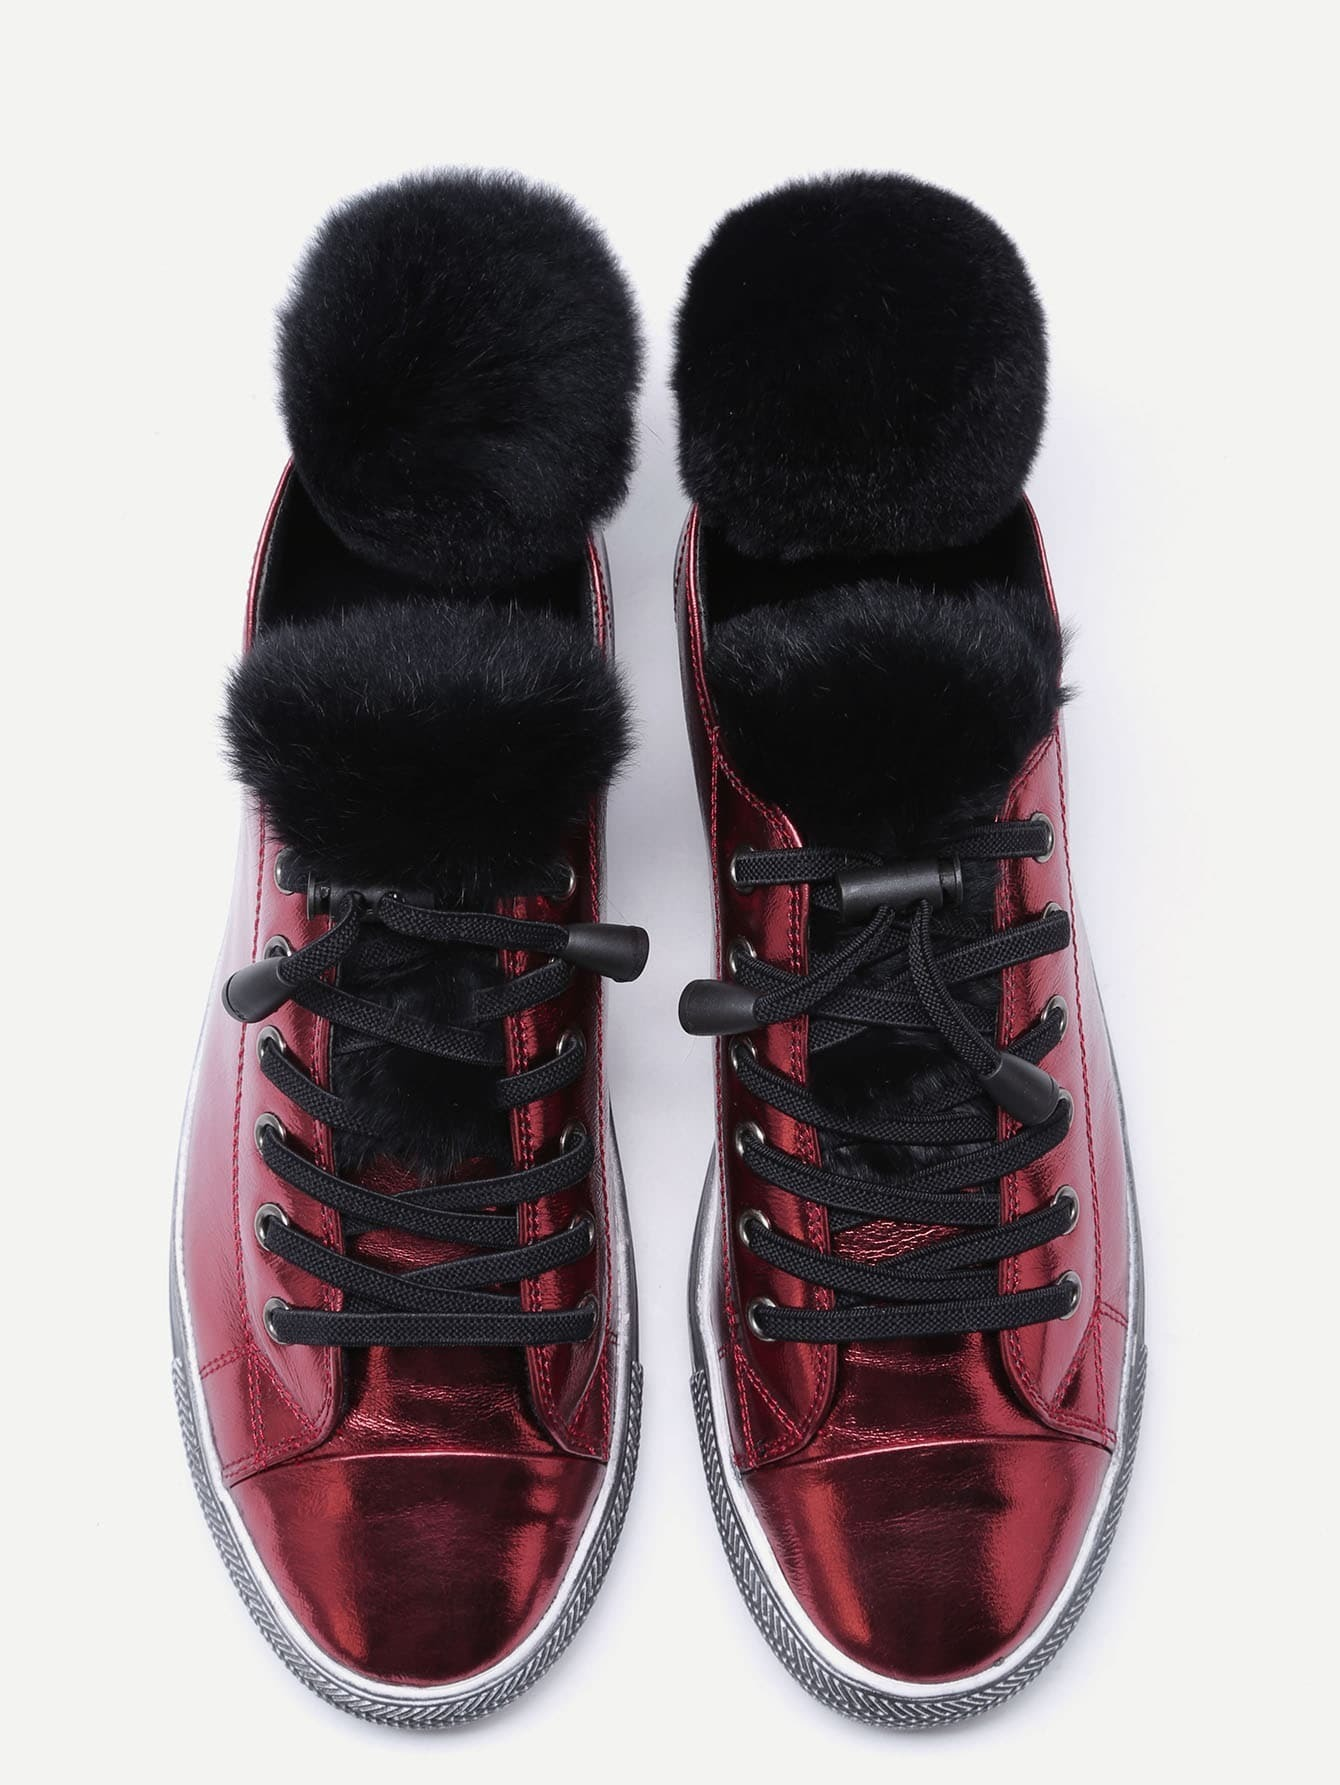 Sneakers en fourrure et cuir bordeaux rouge french romwe for Interieur paupiere inferieure rouge